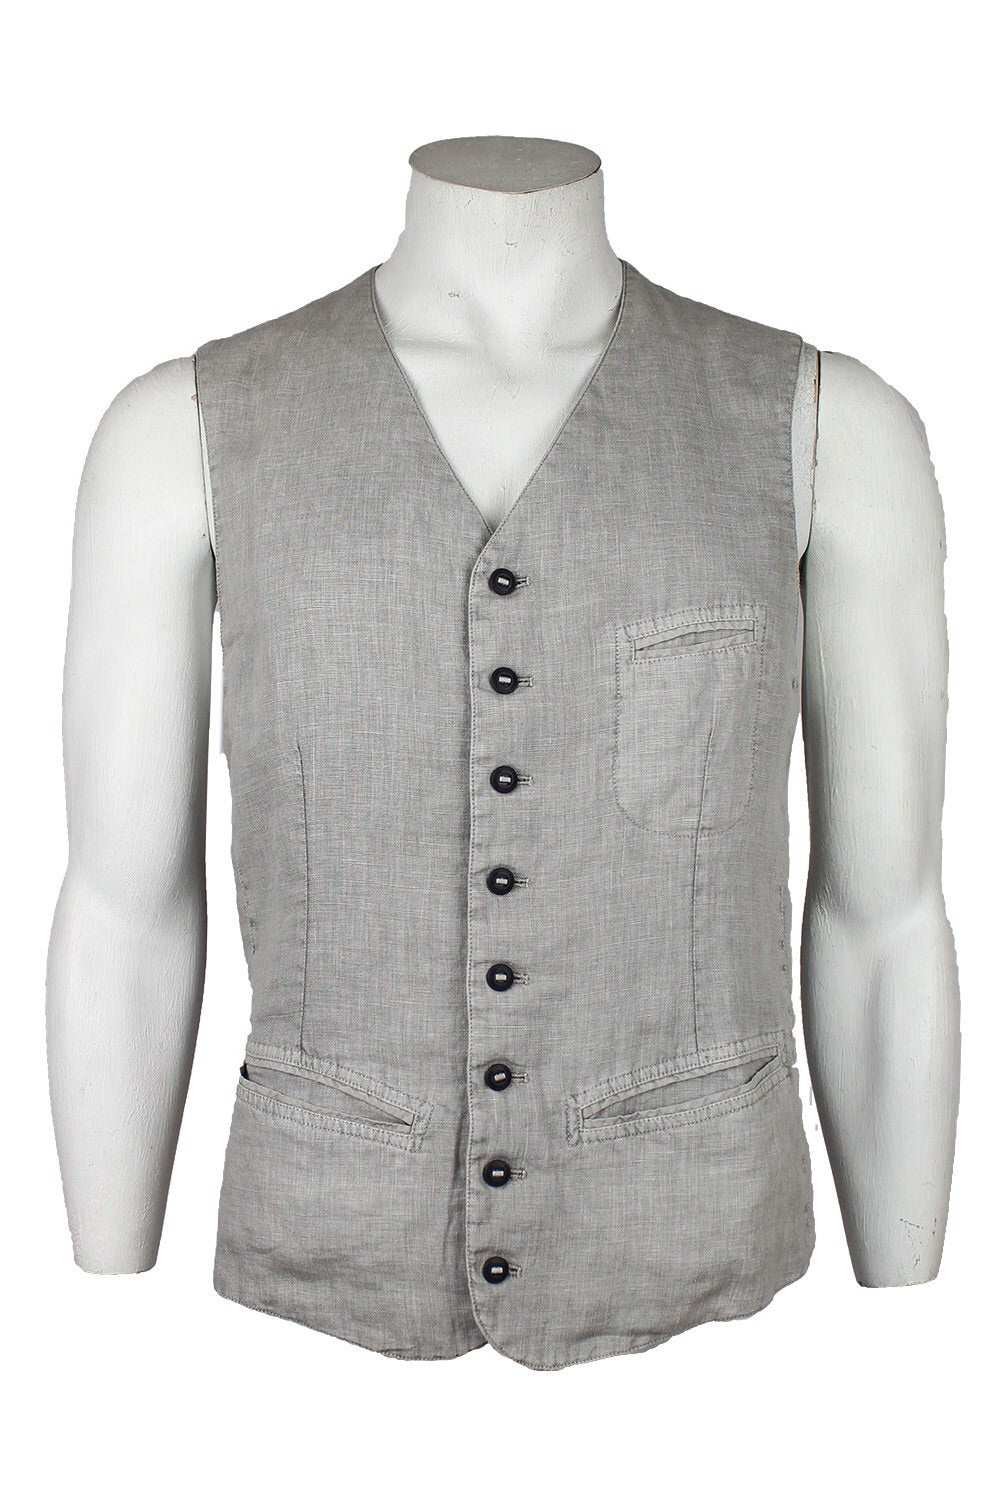 Hannes Roether Grey Linen Vest